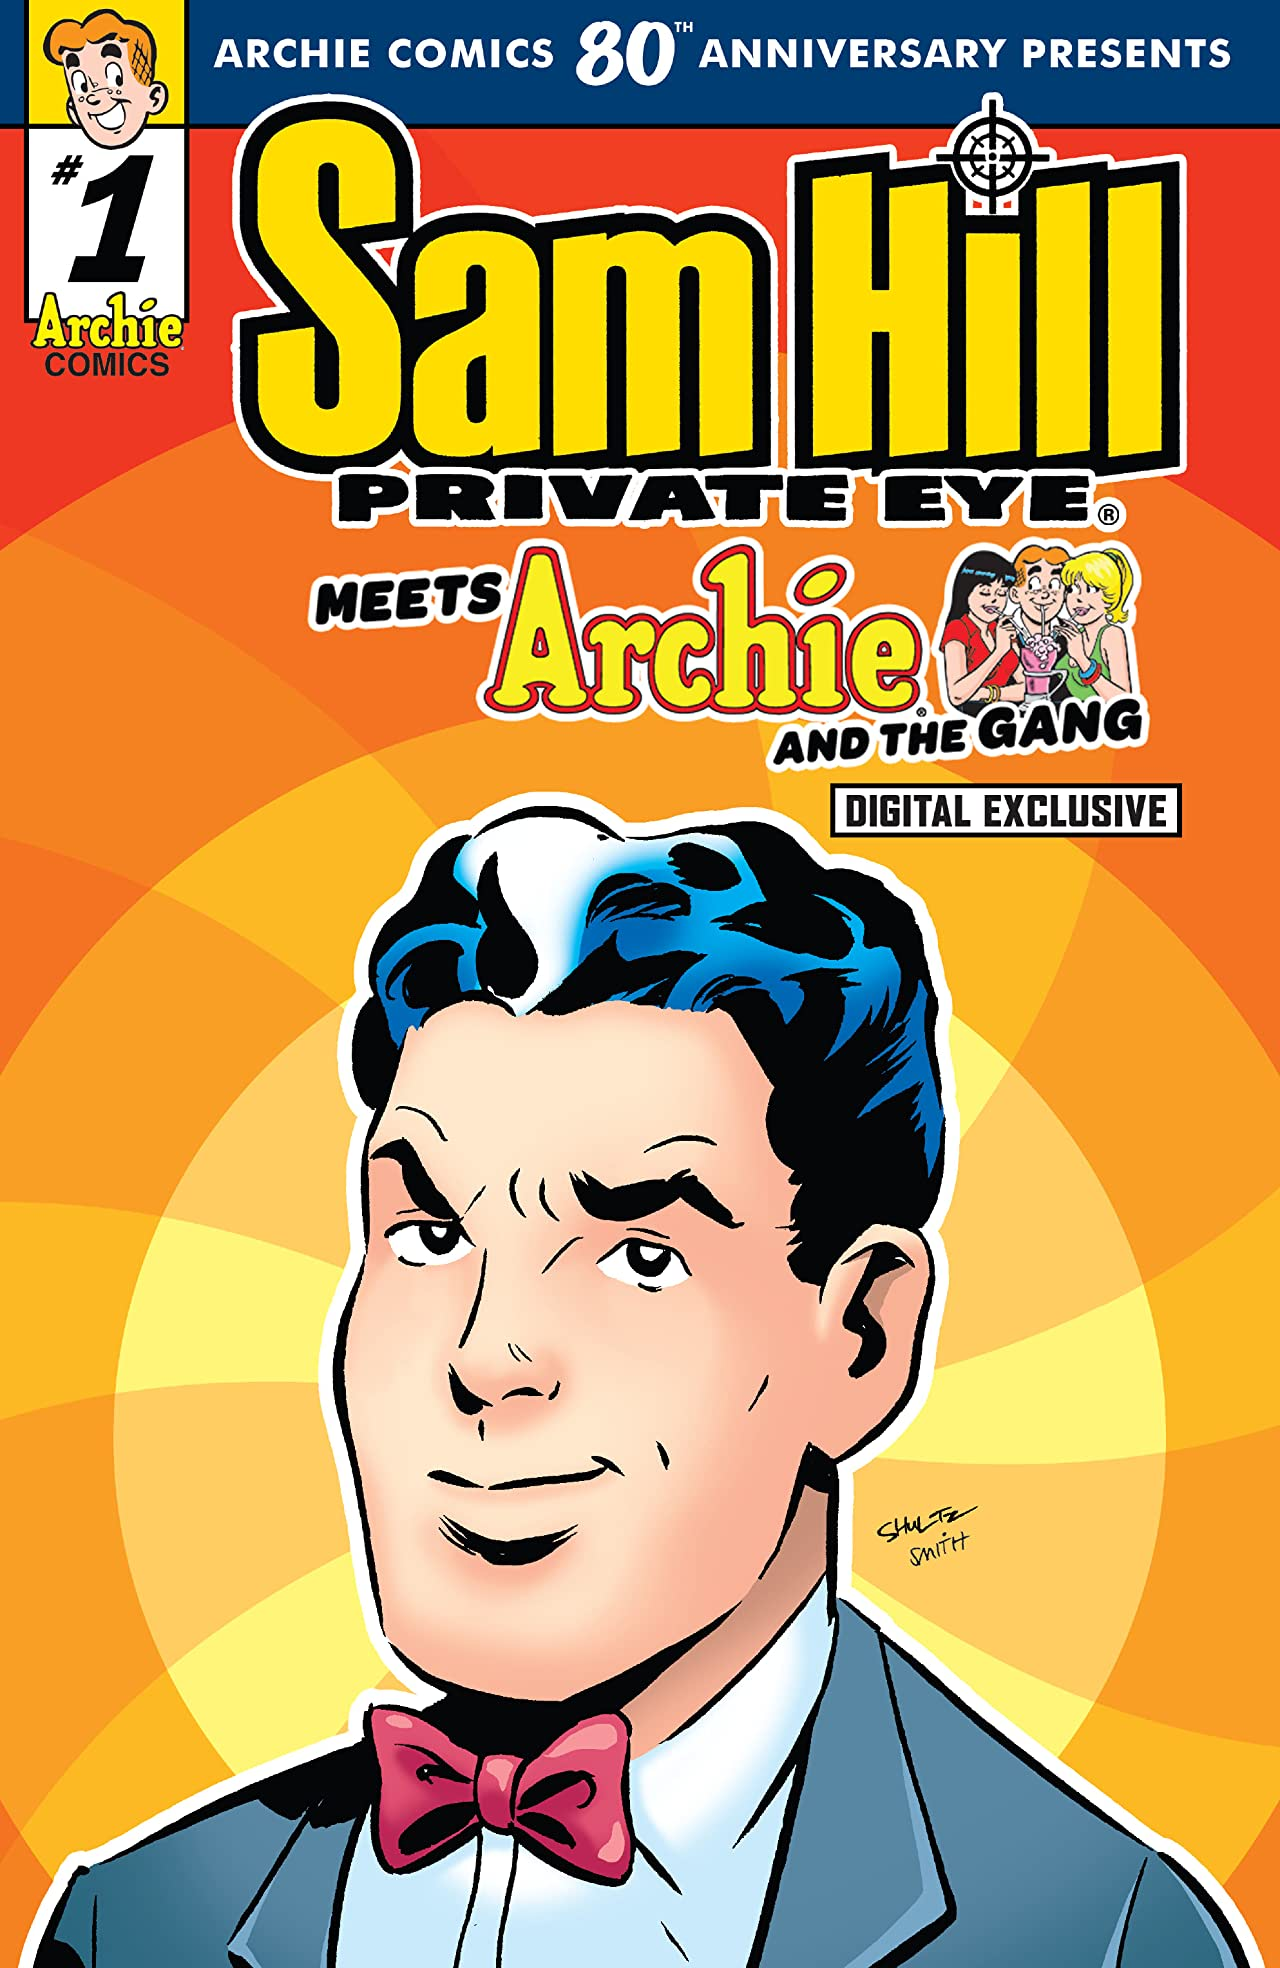 Archie Comics 80th Anniversary Presents Sam Hill No.12